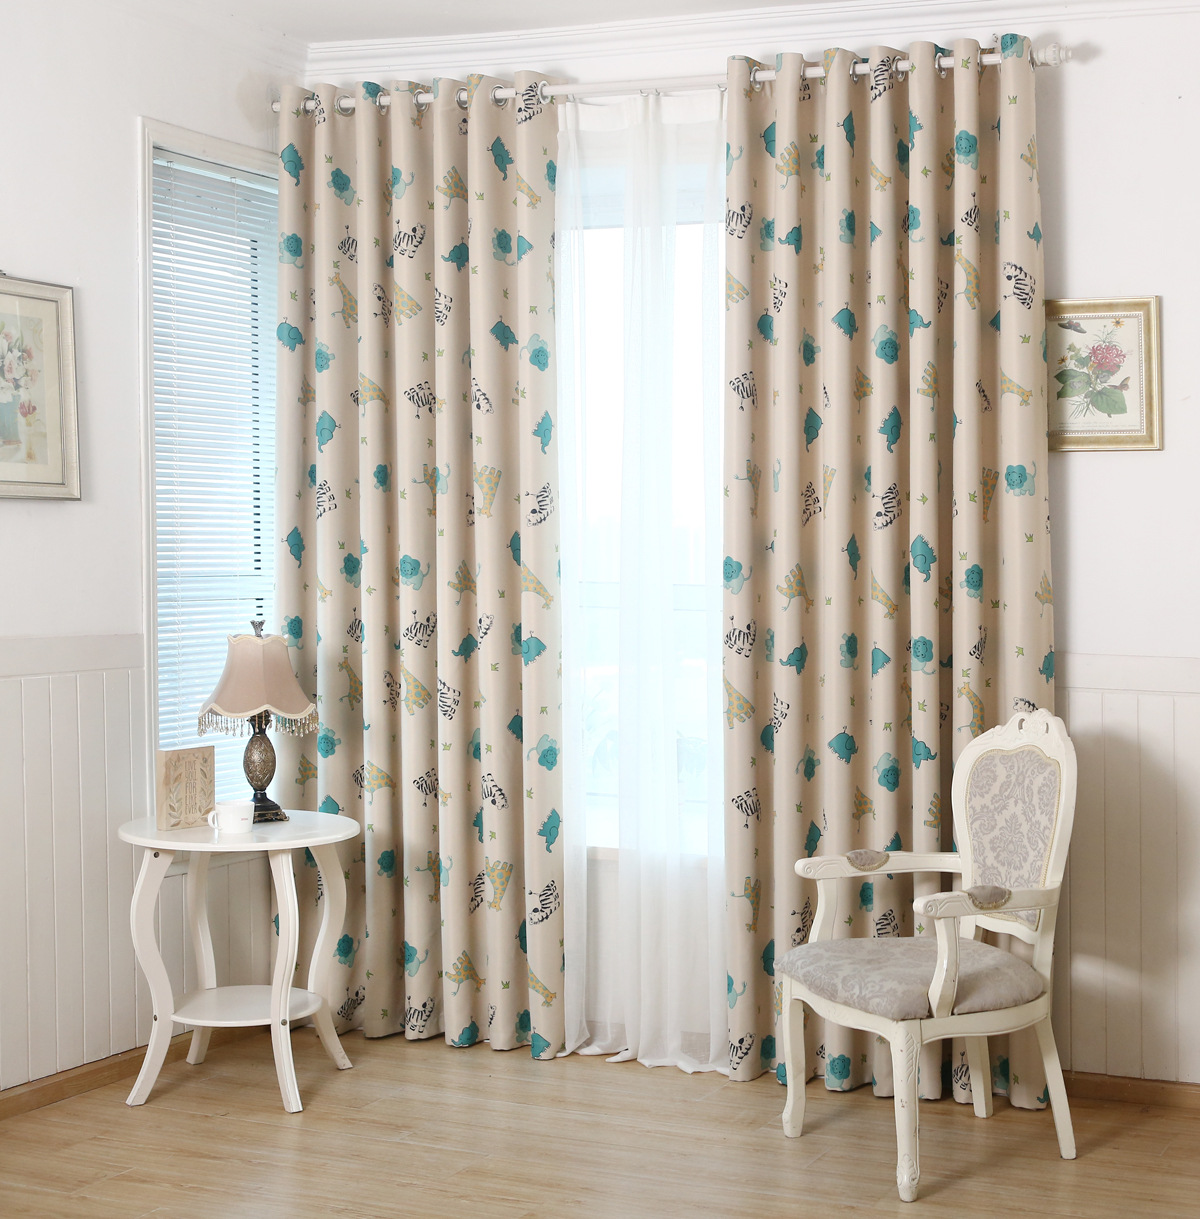 Cute window curtains - Animal Paradise Korean Curtain Bedroom Window Curtain Cloth Cute Kids Curtains For Children Room Living Room